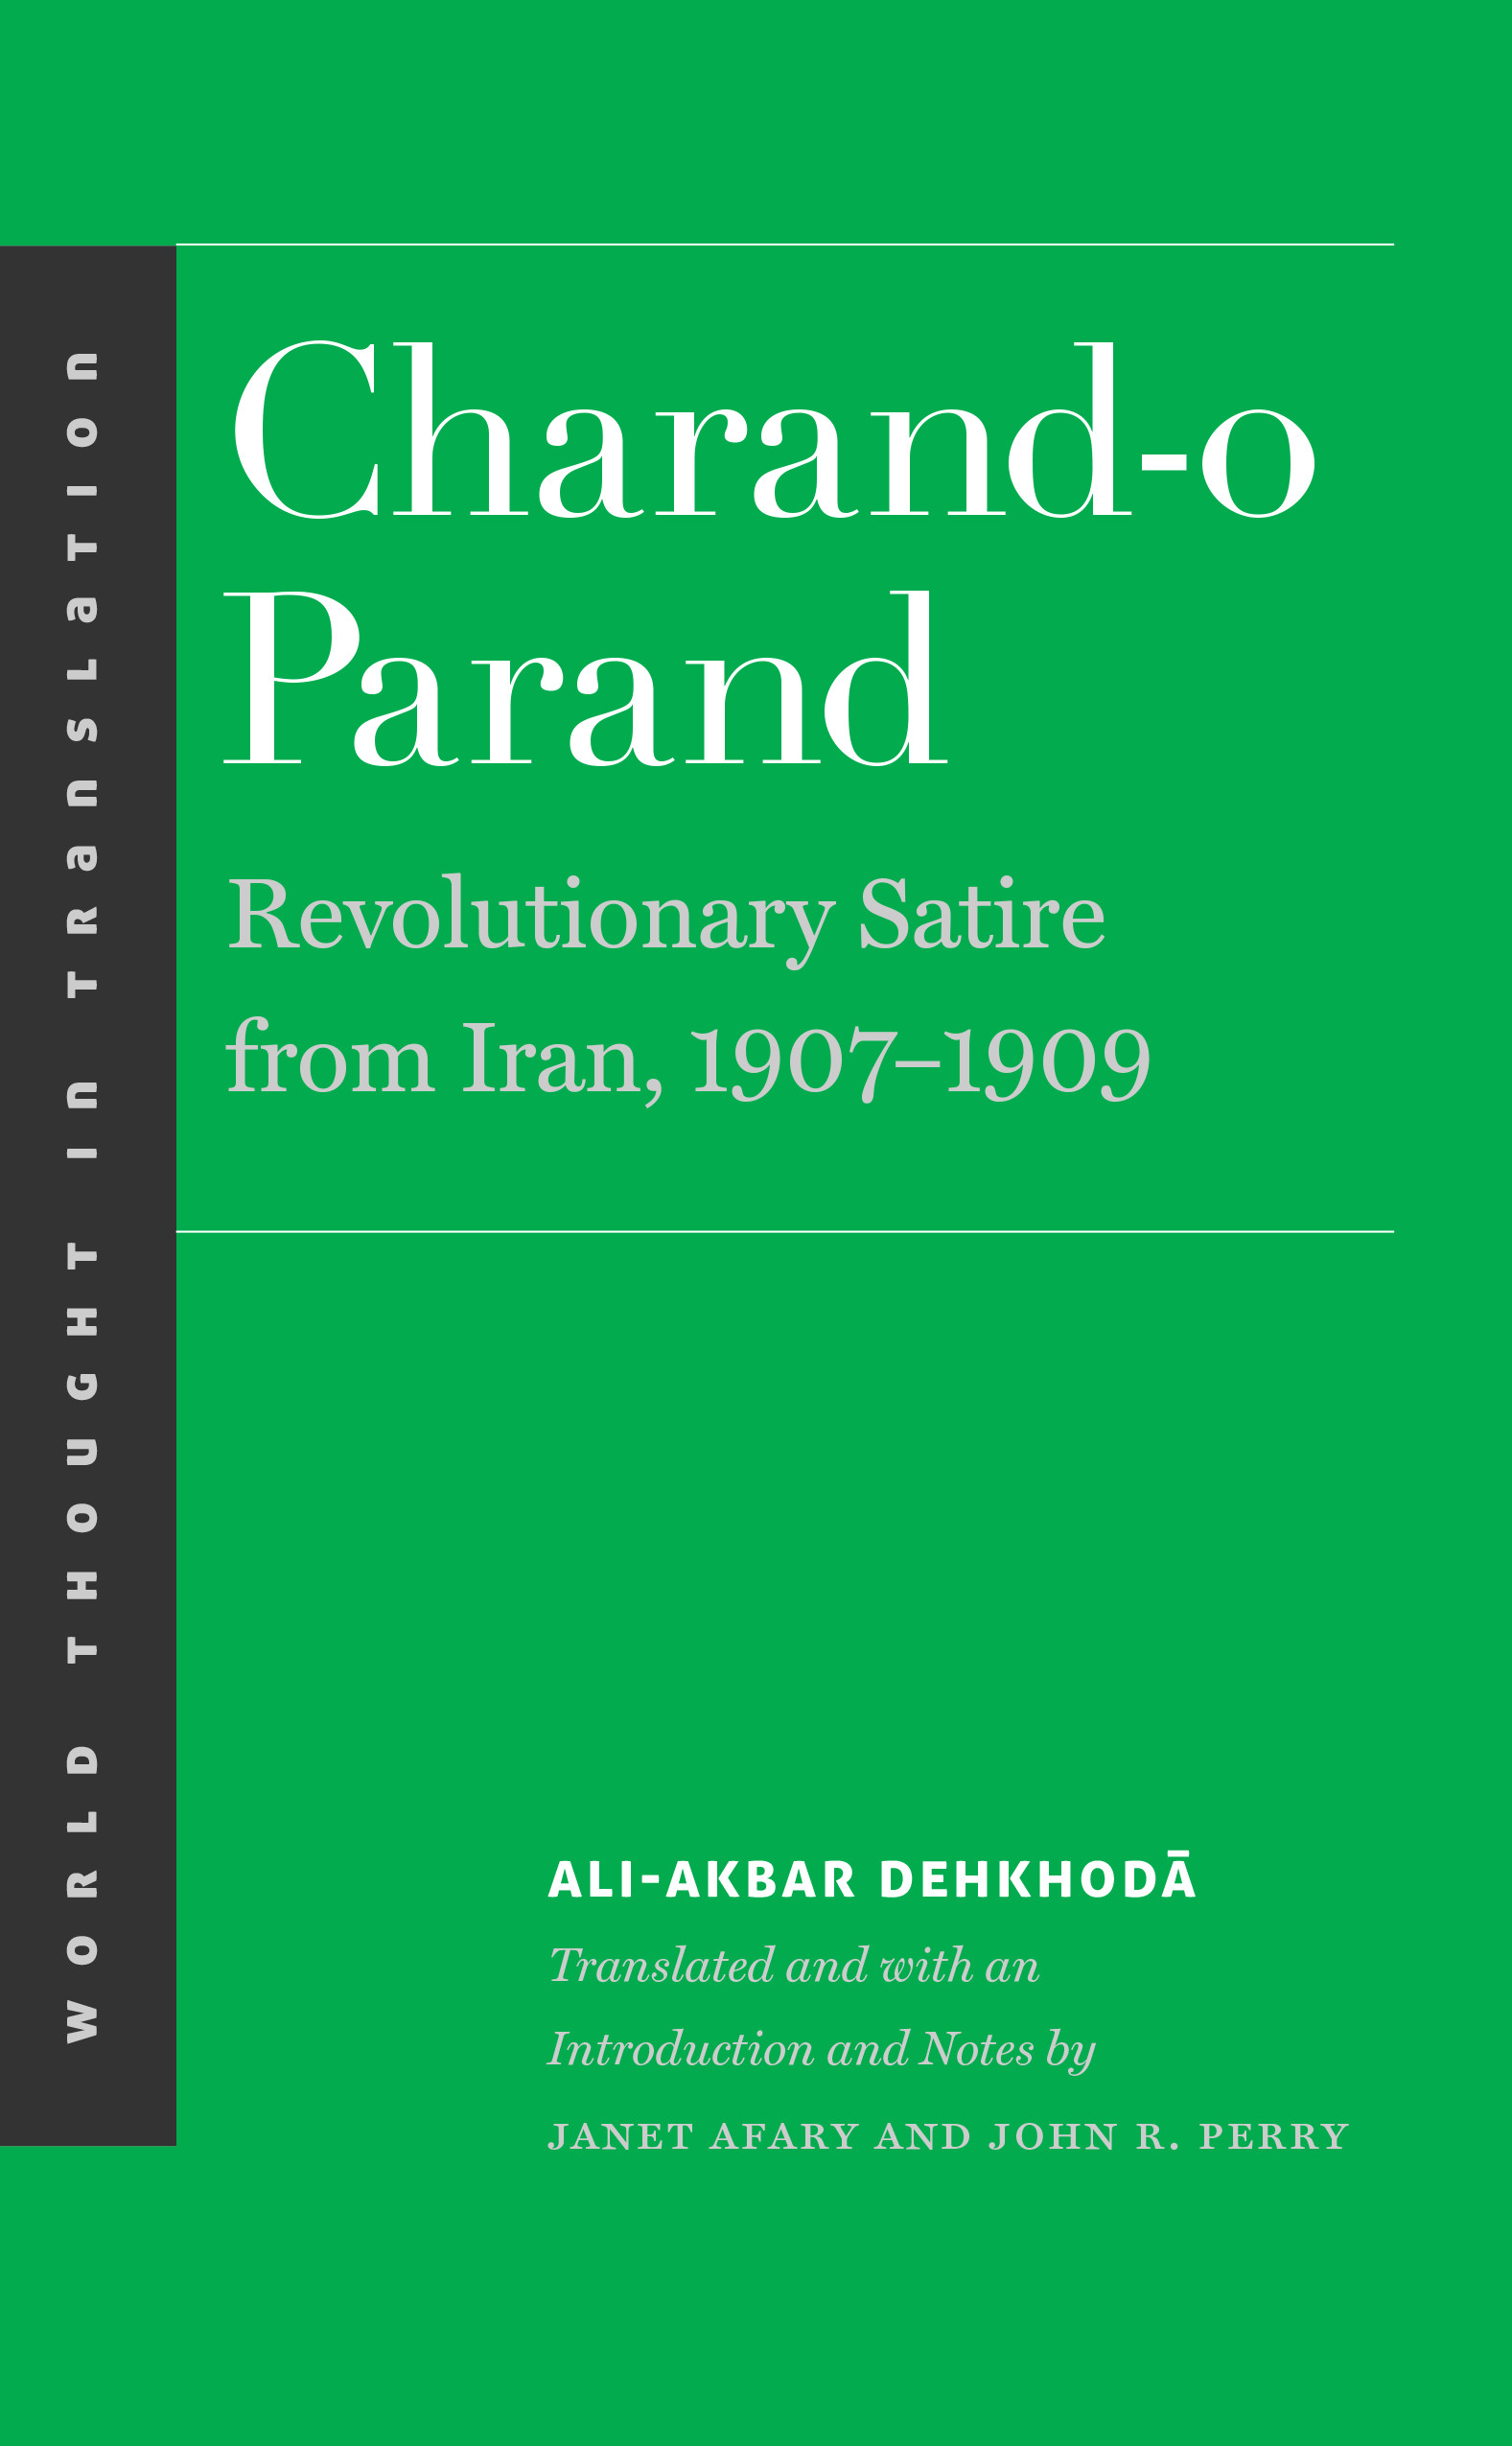 Charand-o Parand by Ali-Akbar Dehkhodā,; Translated by Janet Afary and John R. Perry